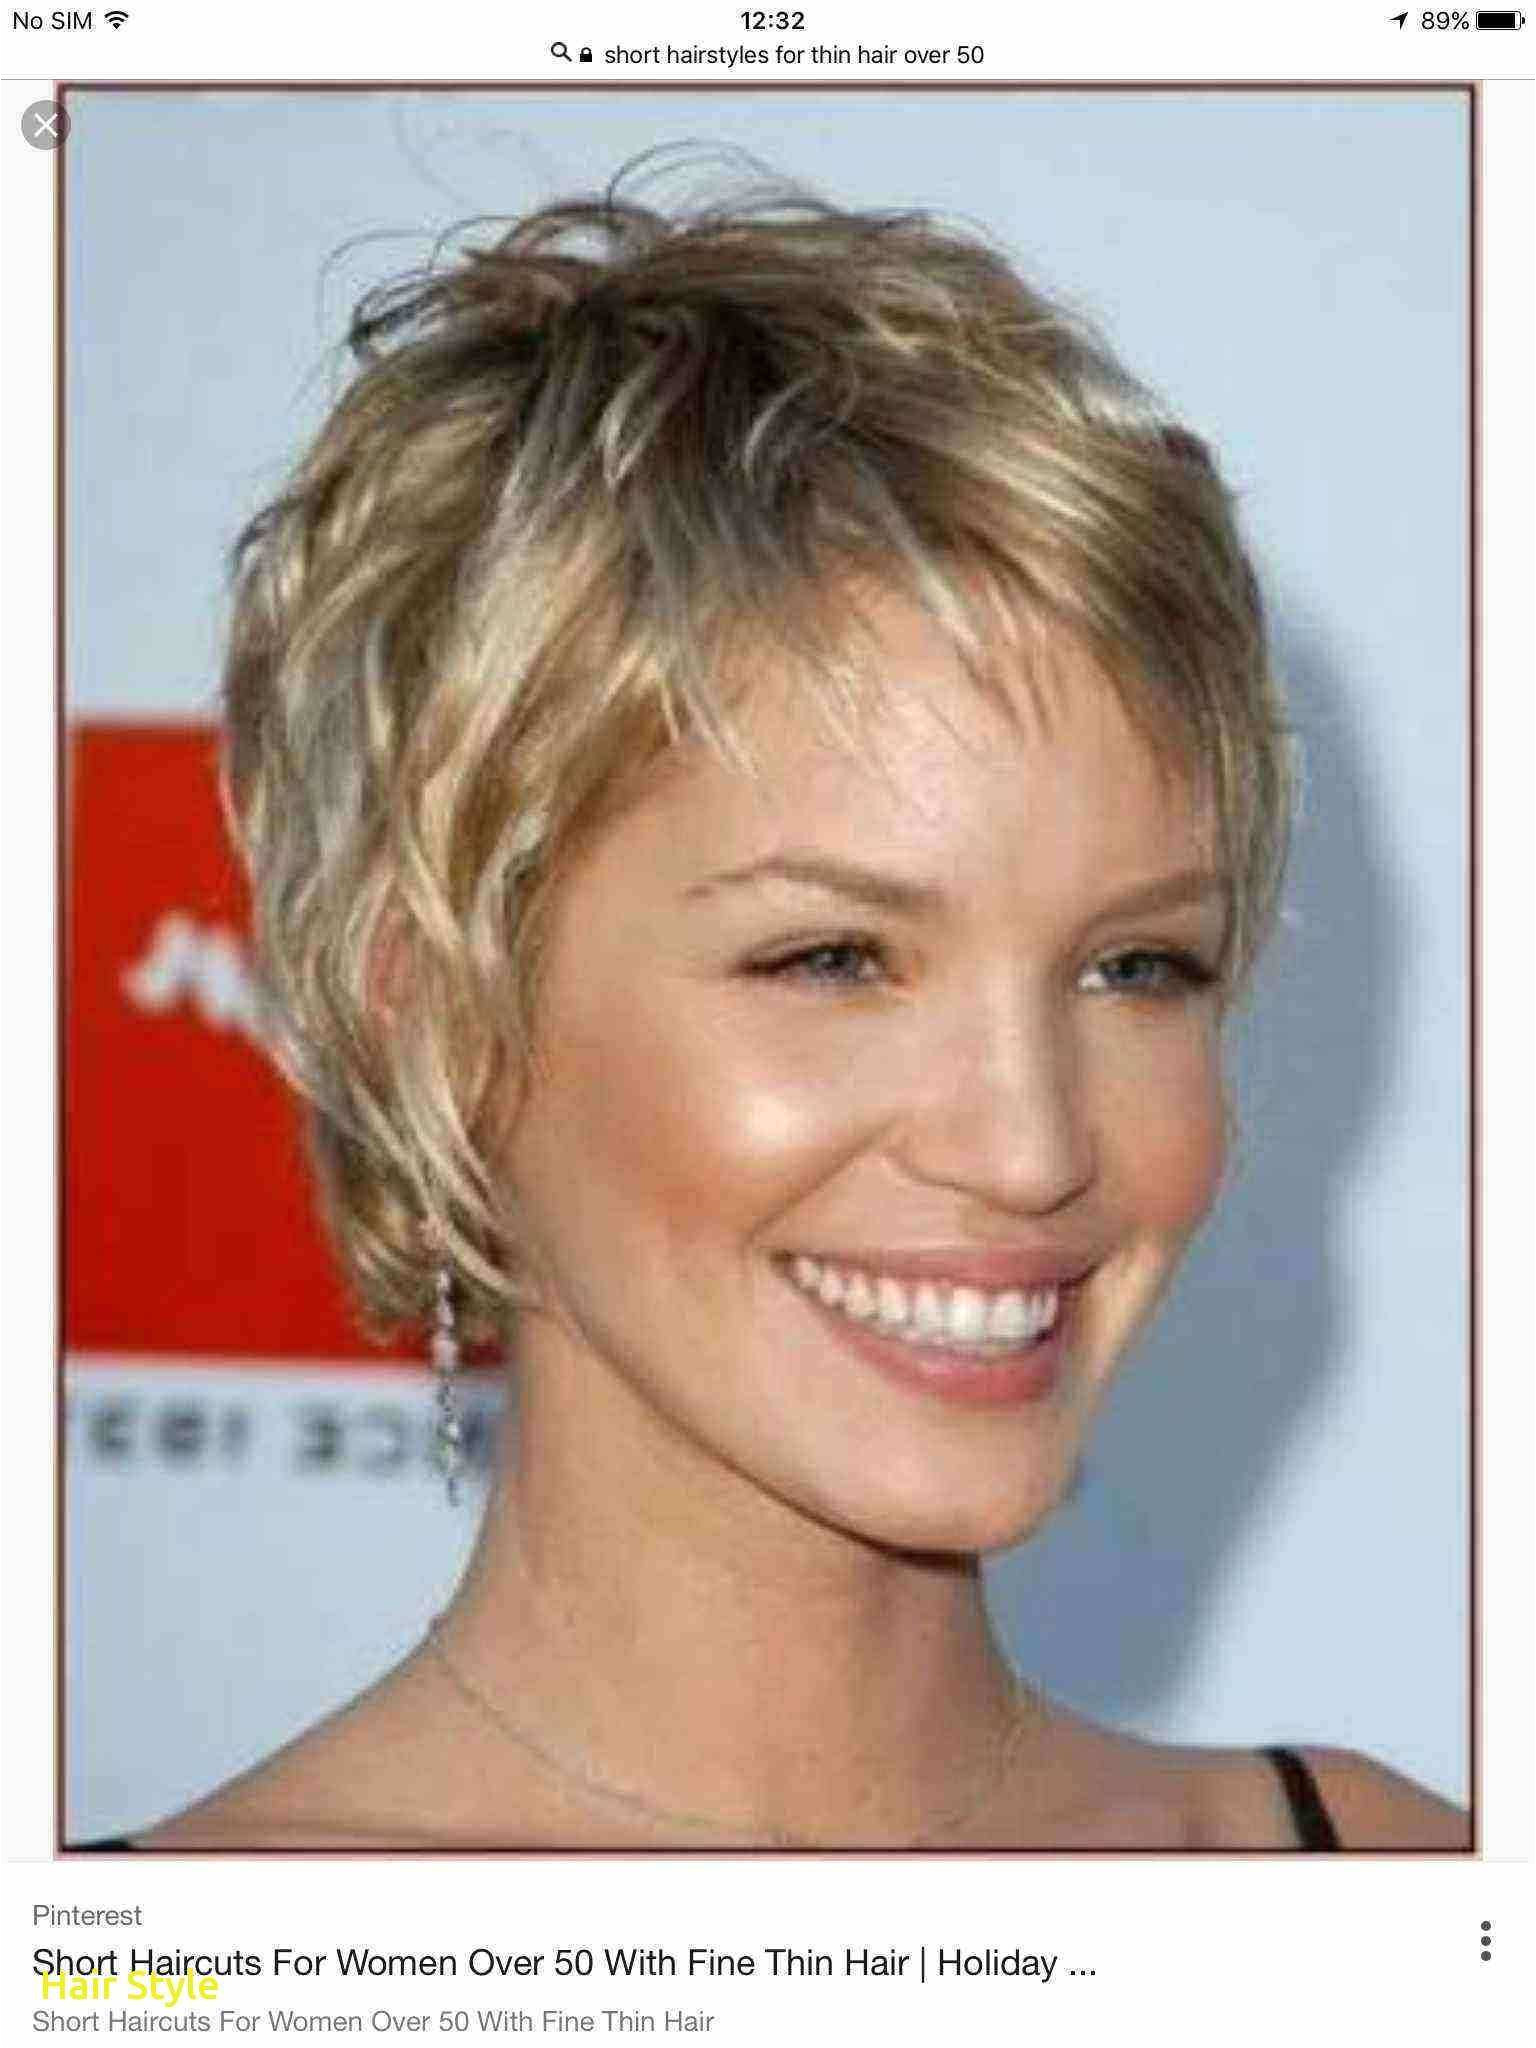 65 Lovely Short Hairstyles for Little Girls with Fine Hair